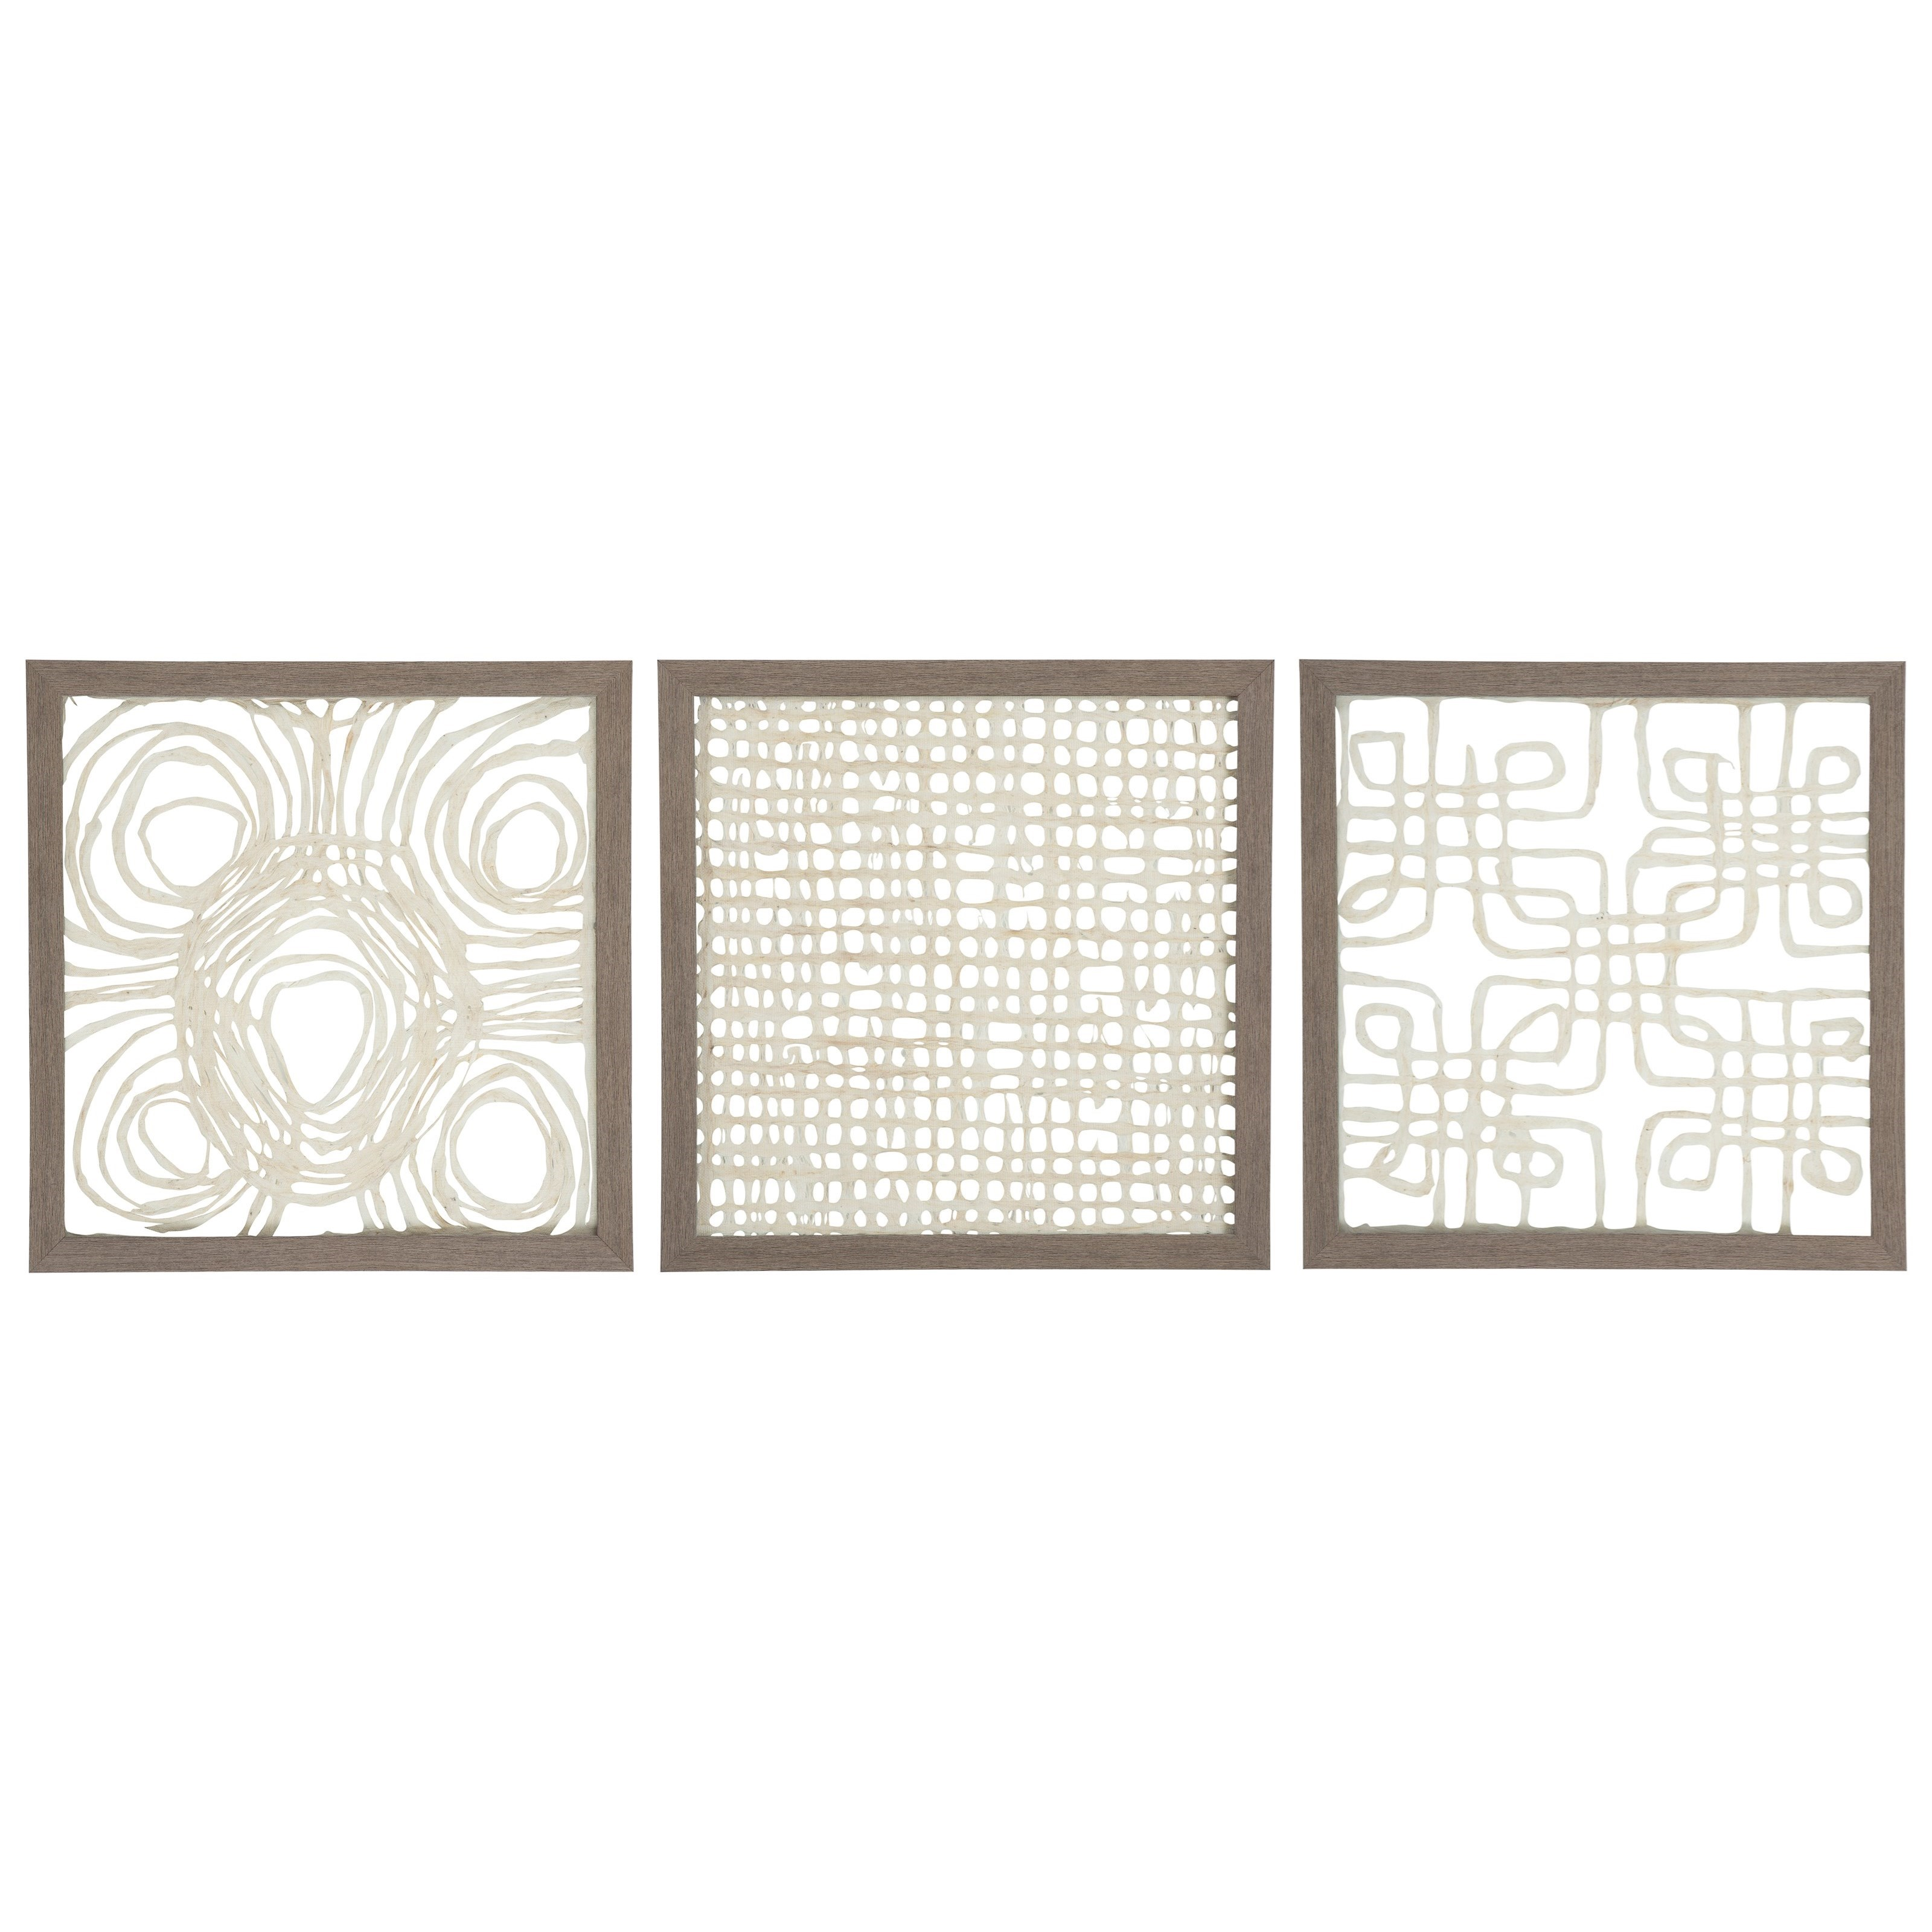 Signature design by ashley wall art a8010009 3 piece for Wall piece design